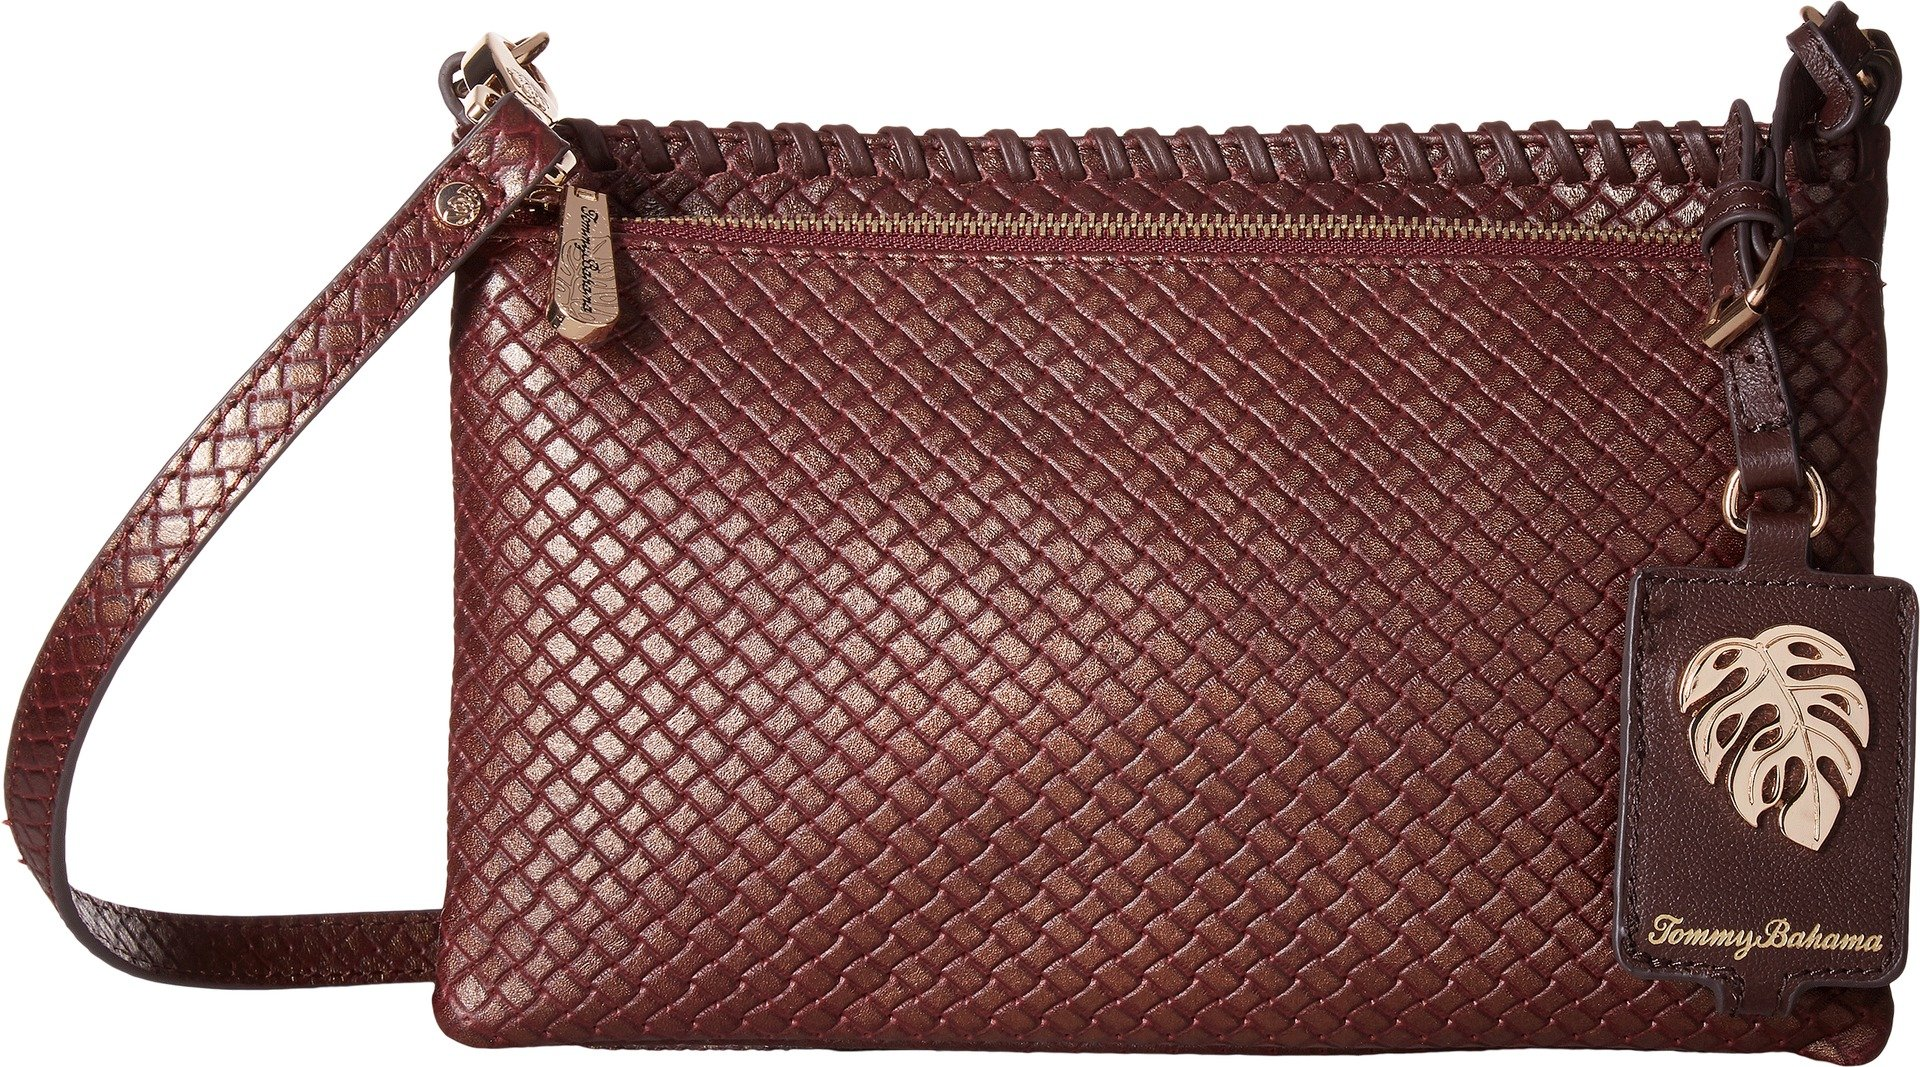 Tommy Bahama Womens Exumas Double Top Zip Crossbody Dark Chestnut/Gold Tipping One Size